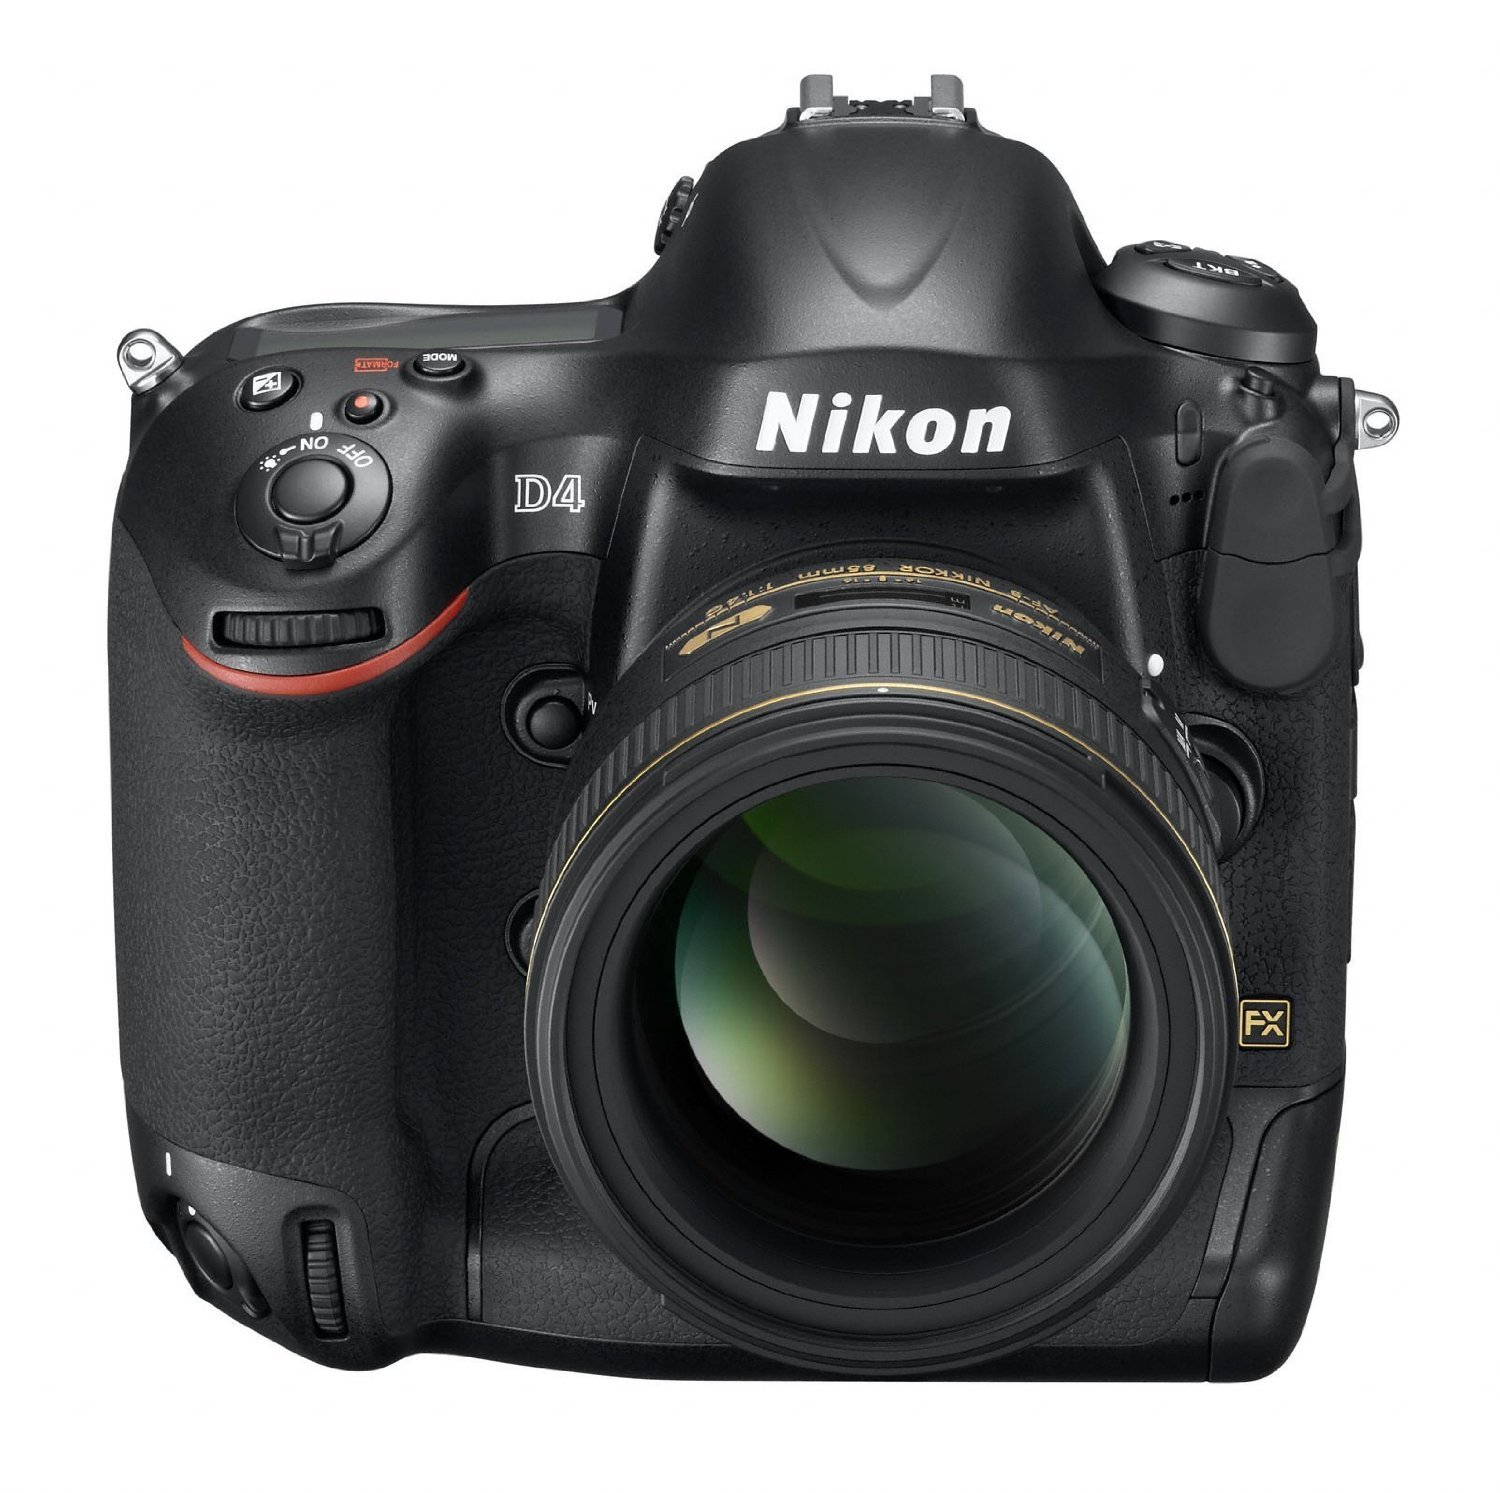 Camera Cheapest Nikon Dslr Camera amazon com nikon d4 16 2 mp cmos fx digital slr with full 1080p hd video body only old model cameras camera